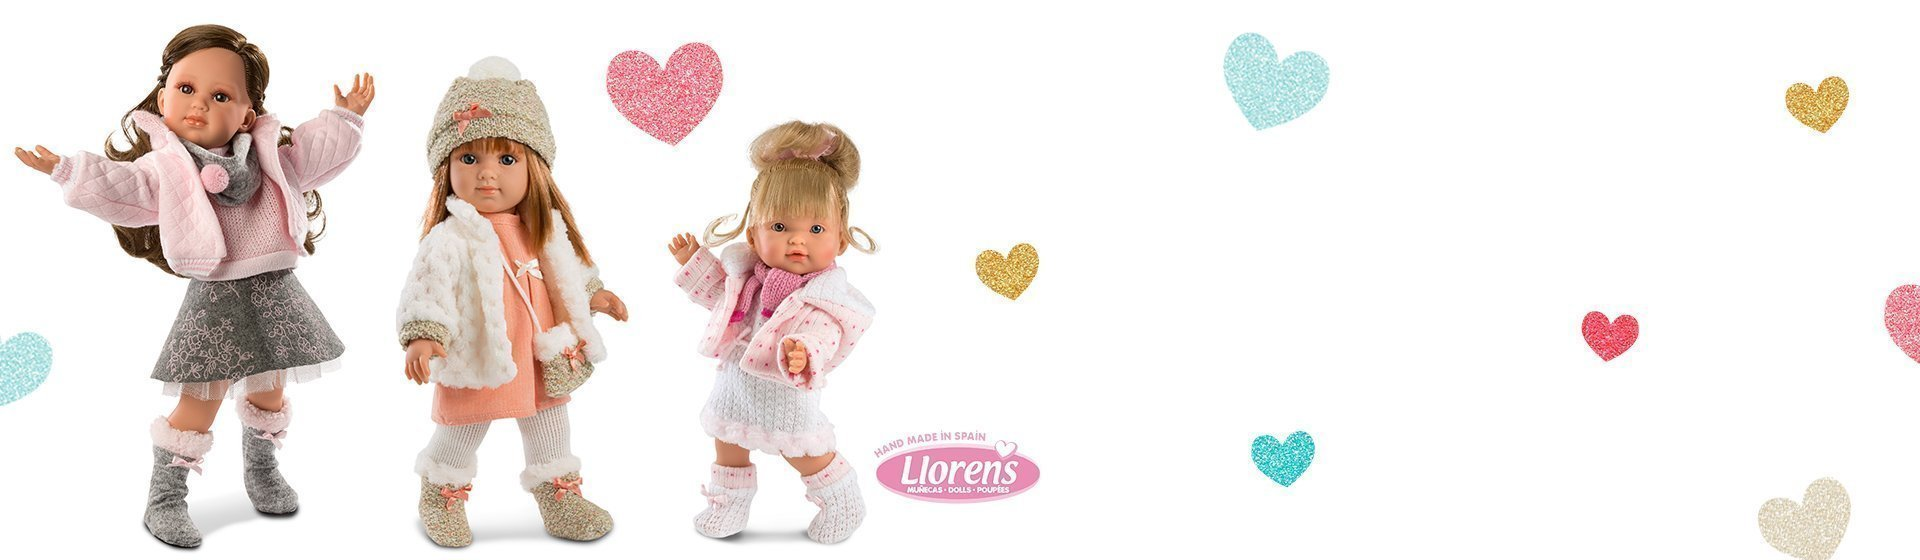 ¡Nueva marca en Dolls and Dolls!